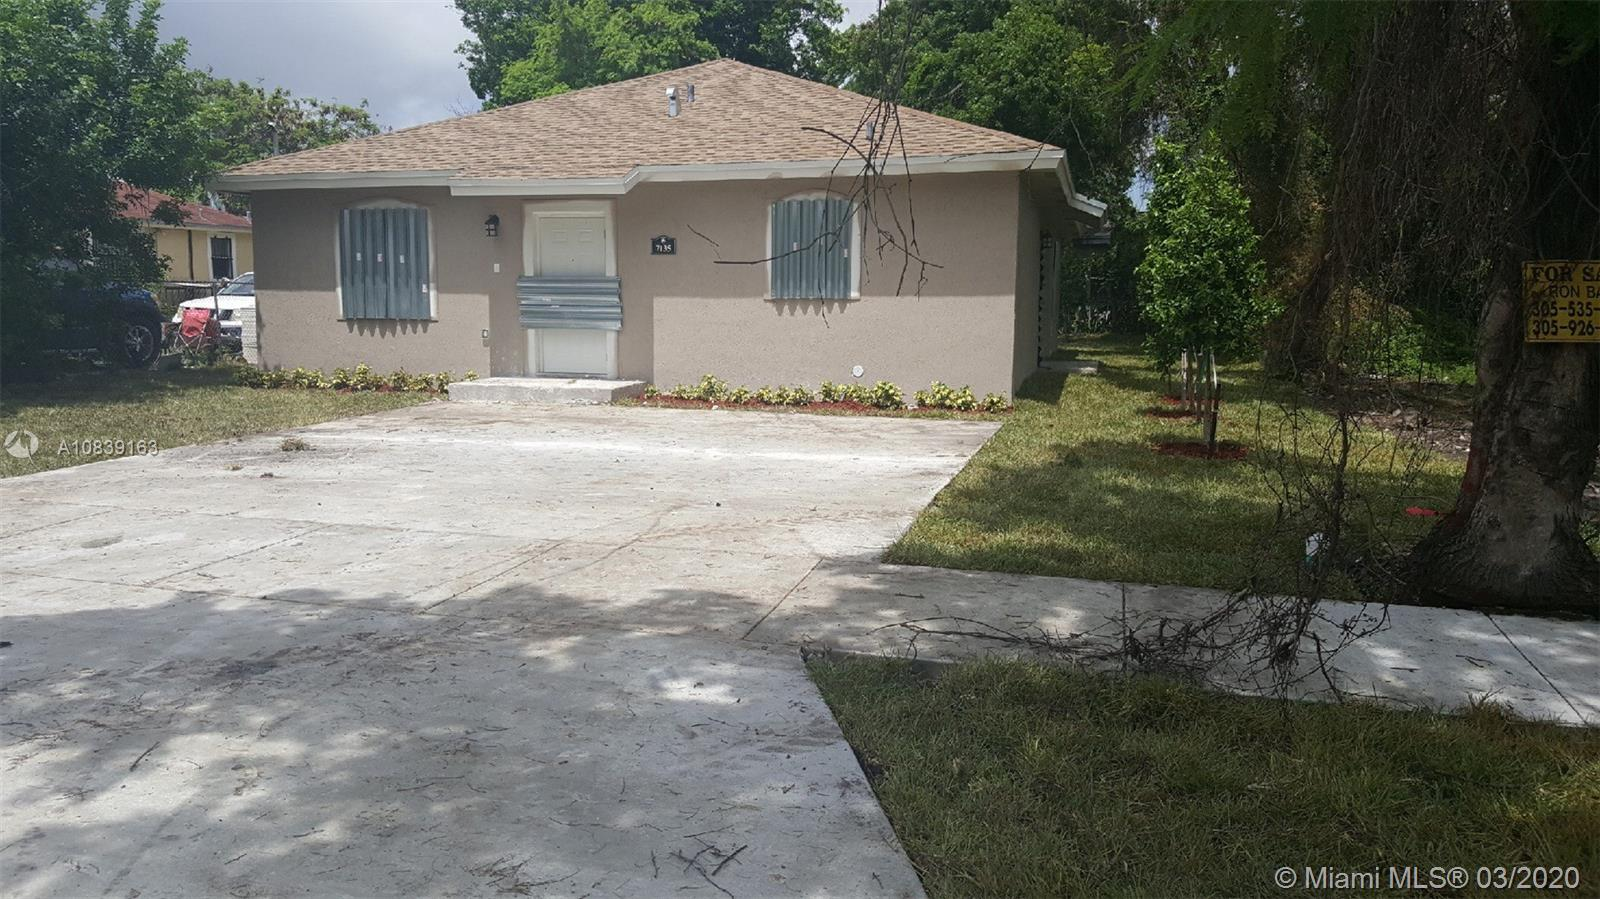 806 NW 114 STREET, Miami, Florida 33168, 4 Bedrooms Bedrooms, ,2 BathroomsBathrooms,Residential,For Sale,806 NW 114 STREET,A10839163